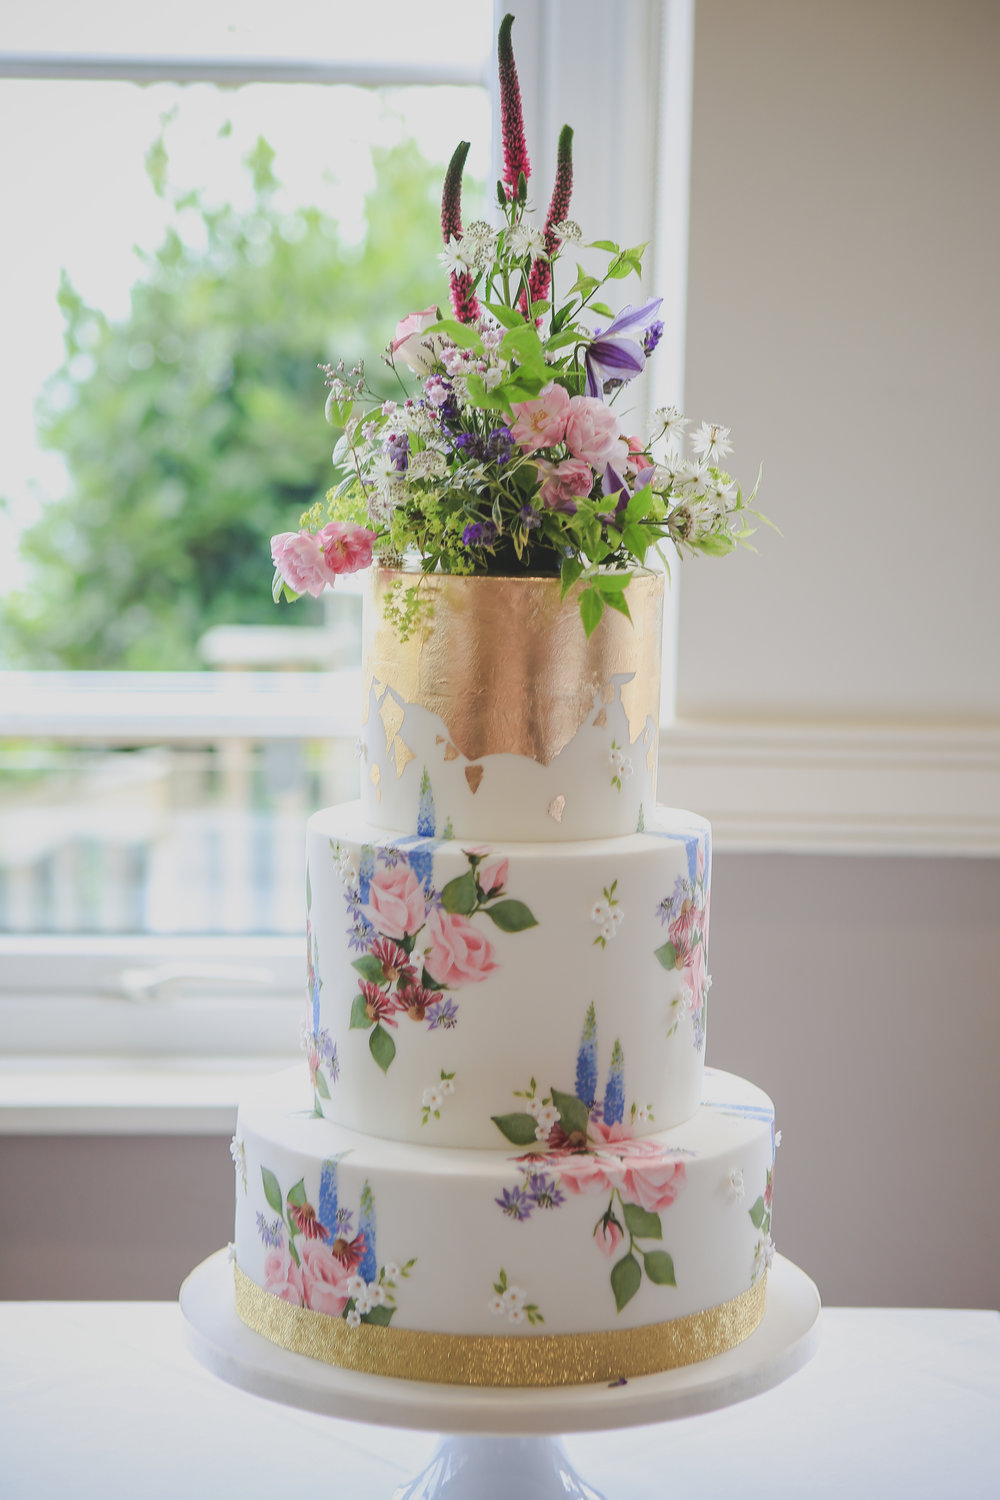 CORNISH WILDFLOWERS  This pretty 3 tier hand painted cake is decorated with Cornish wildflowers and finished with decadent gold leaf and a pretty posy of fresh blooms... perfect for a country garden wedding.